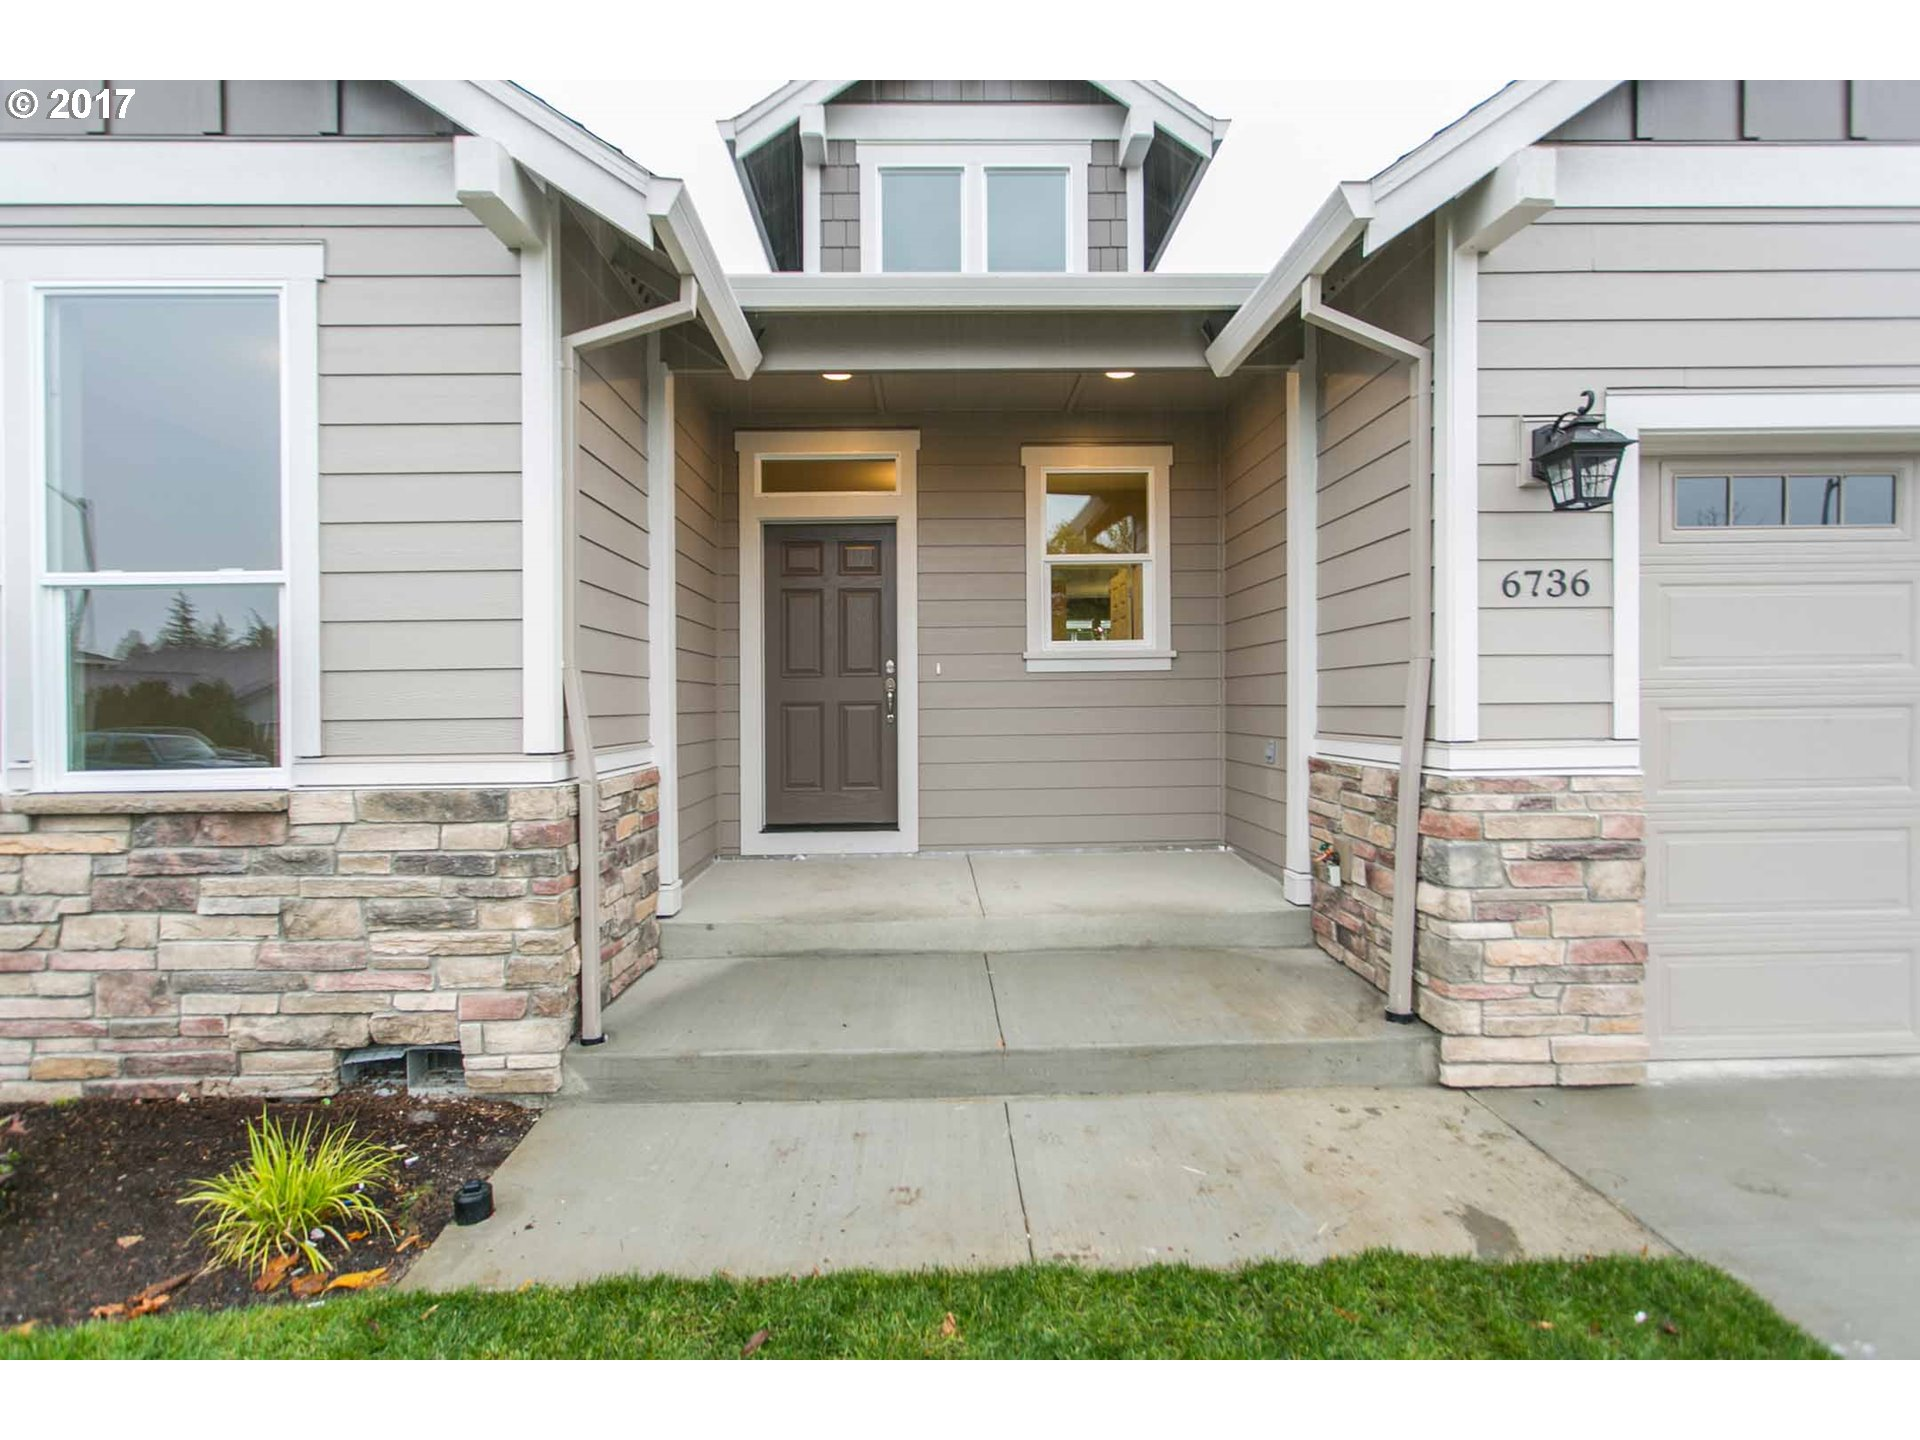 1976 sq. ft 4 bedrooms 2 bathrooms  House For Sale,Hillsboro, OR